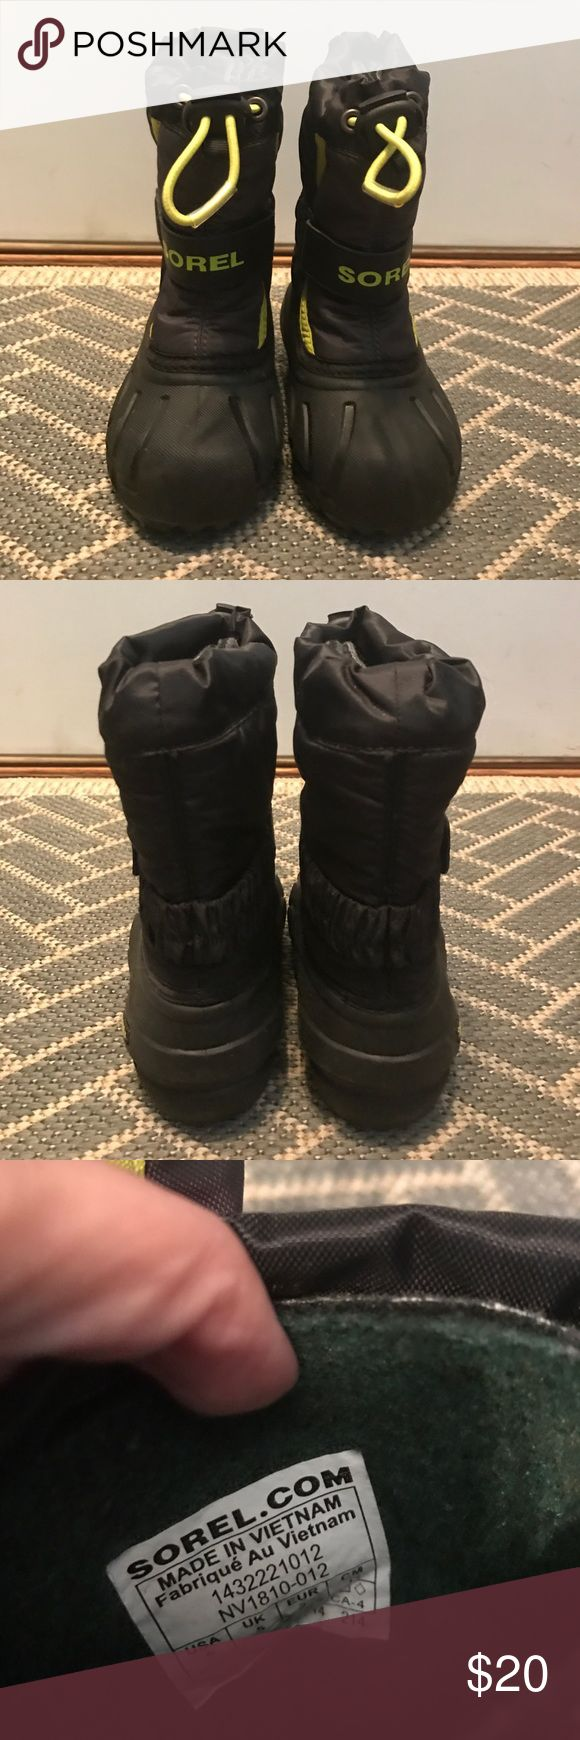 Sorel Toddler Snow boots Gently used snow boots perfect for boys or girls! Sorel Shoes Boots